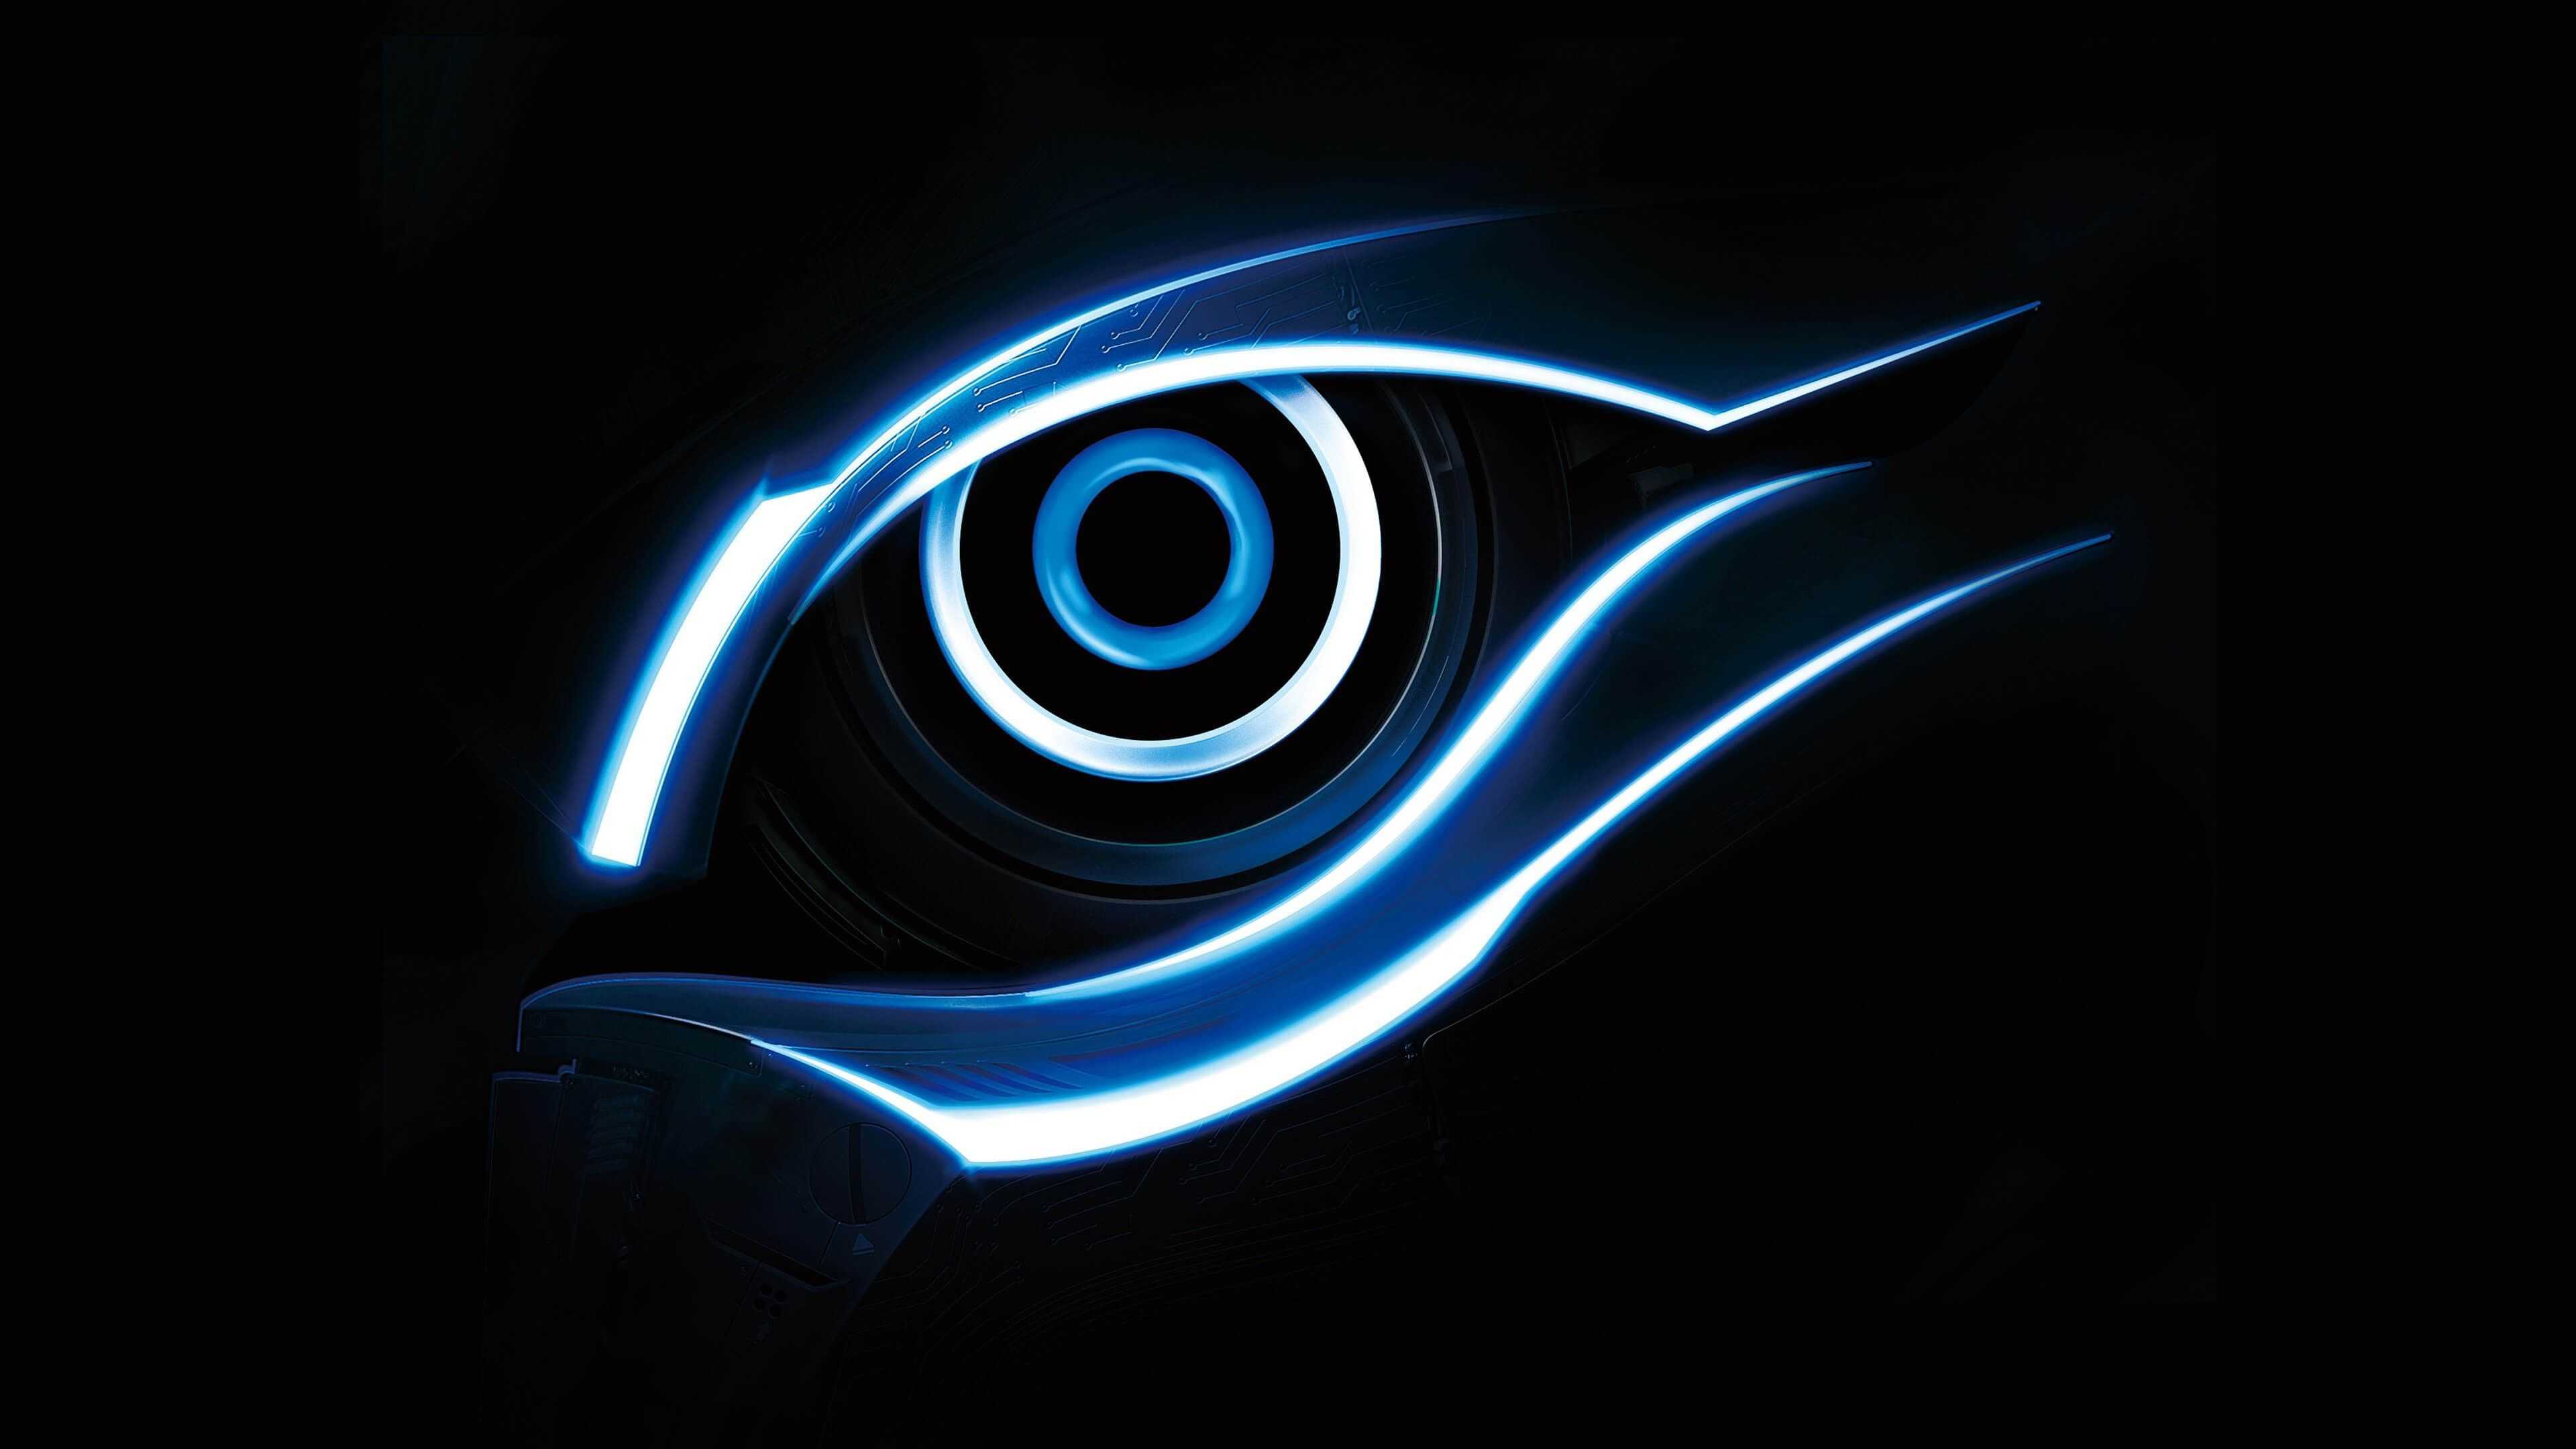 3840x2160 Ultra Hd 4k Blue Gigabyte Eye Logo 4k Wallpaper Download Wallpaper Dark Wallpaper Technology Wallpaper Computer Wallpaper Desktop Wallpapers